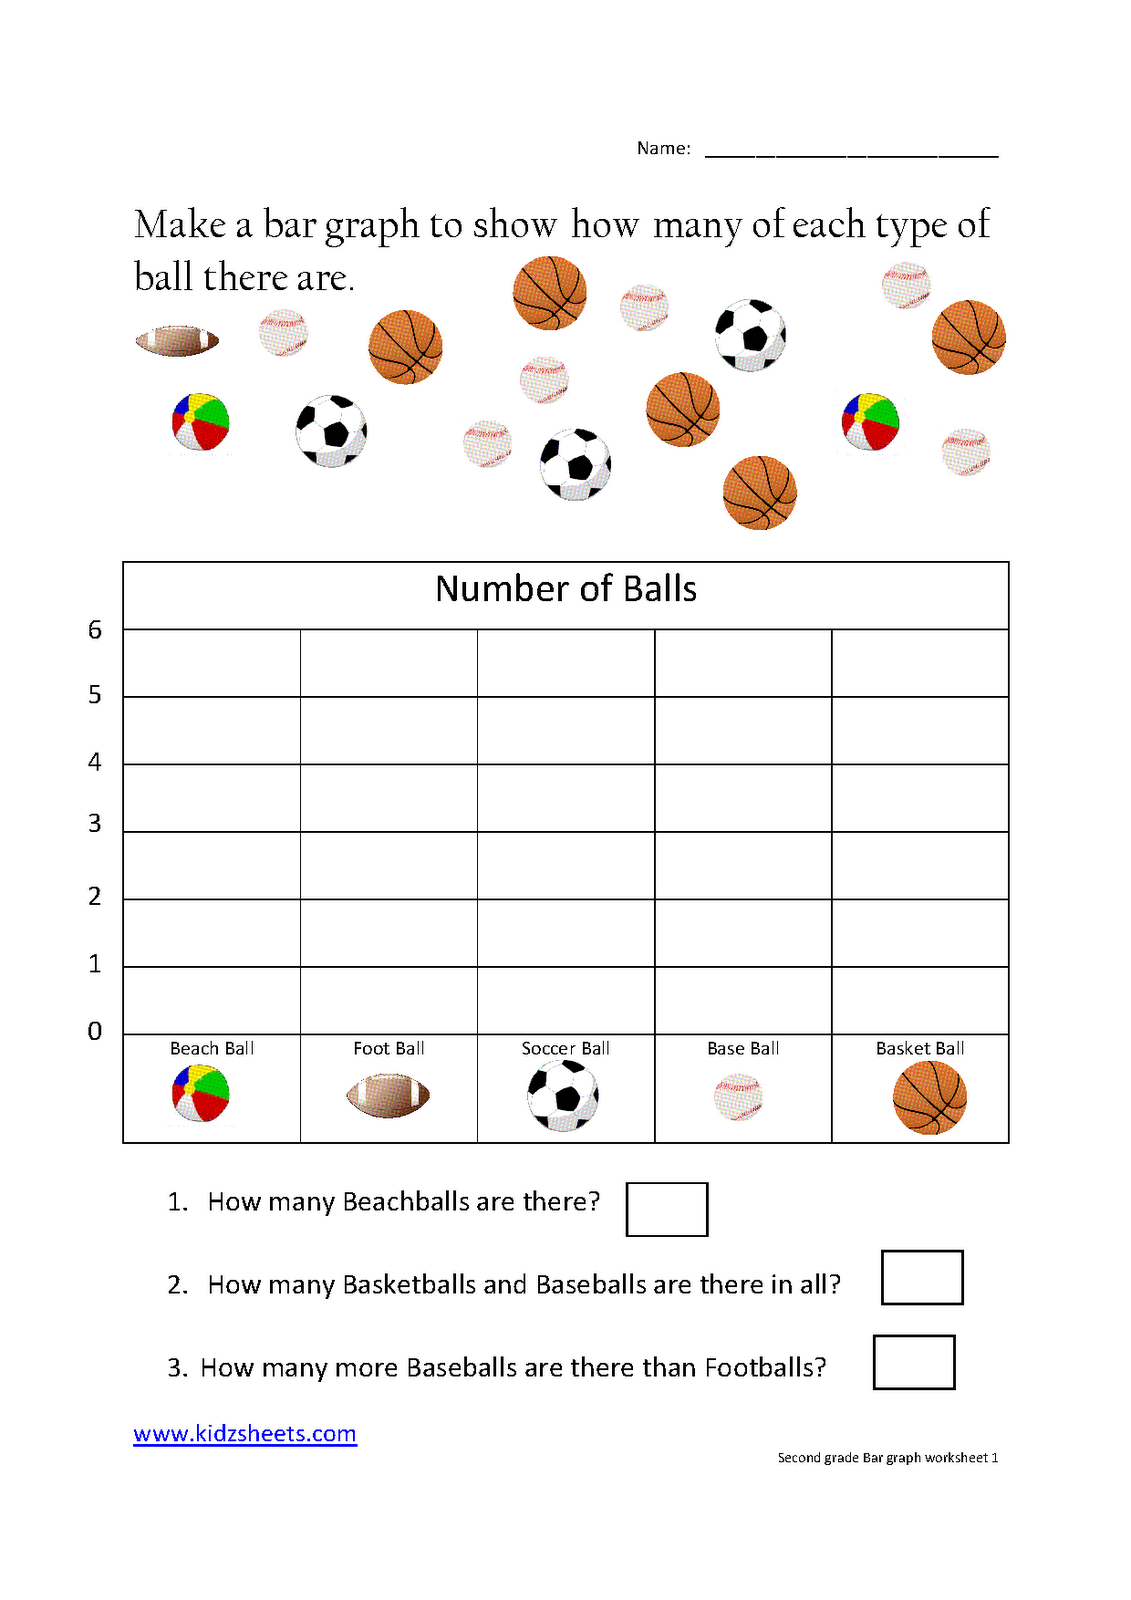 Kidz Worksheets Second Grade Bar Graph Worksheet1 School